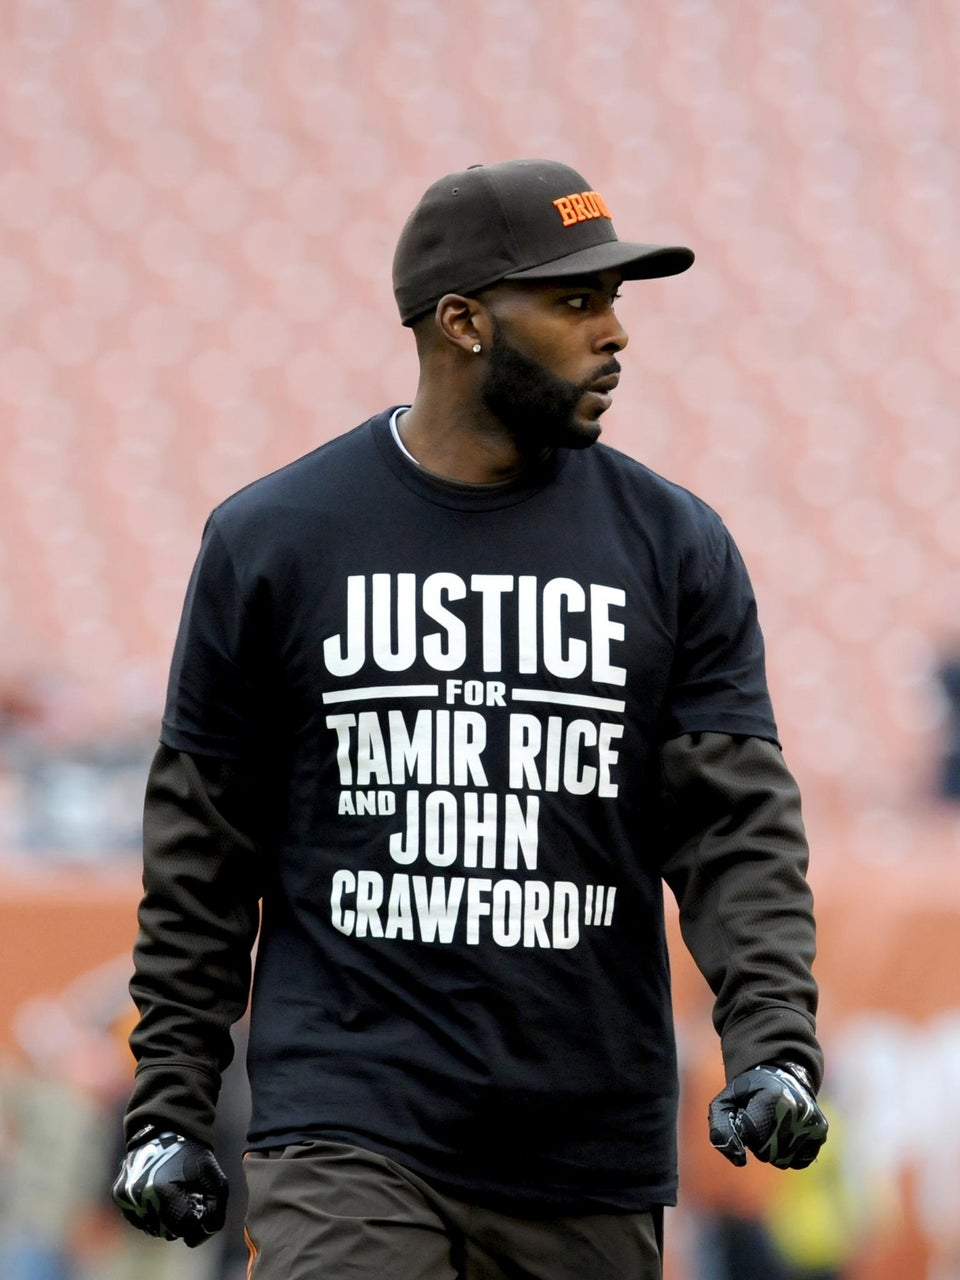 Watch Cleveland Browns' Andrew Hawkins' Perfect Response to Being Criticized for Wearing Tamir Rice Shirt